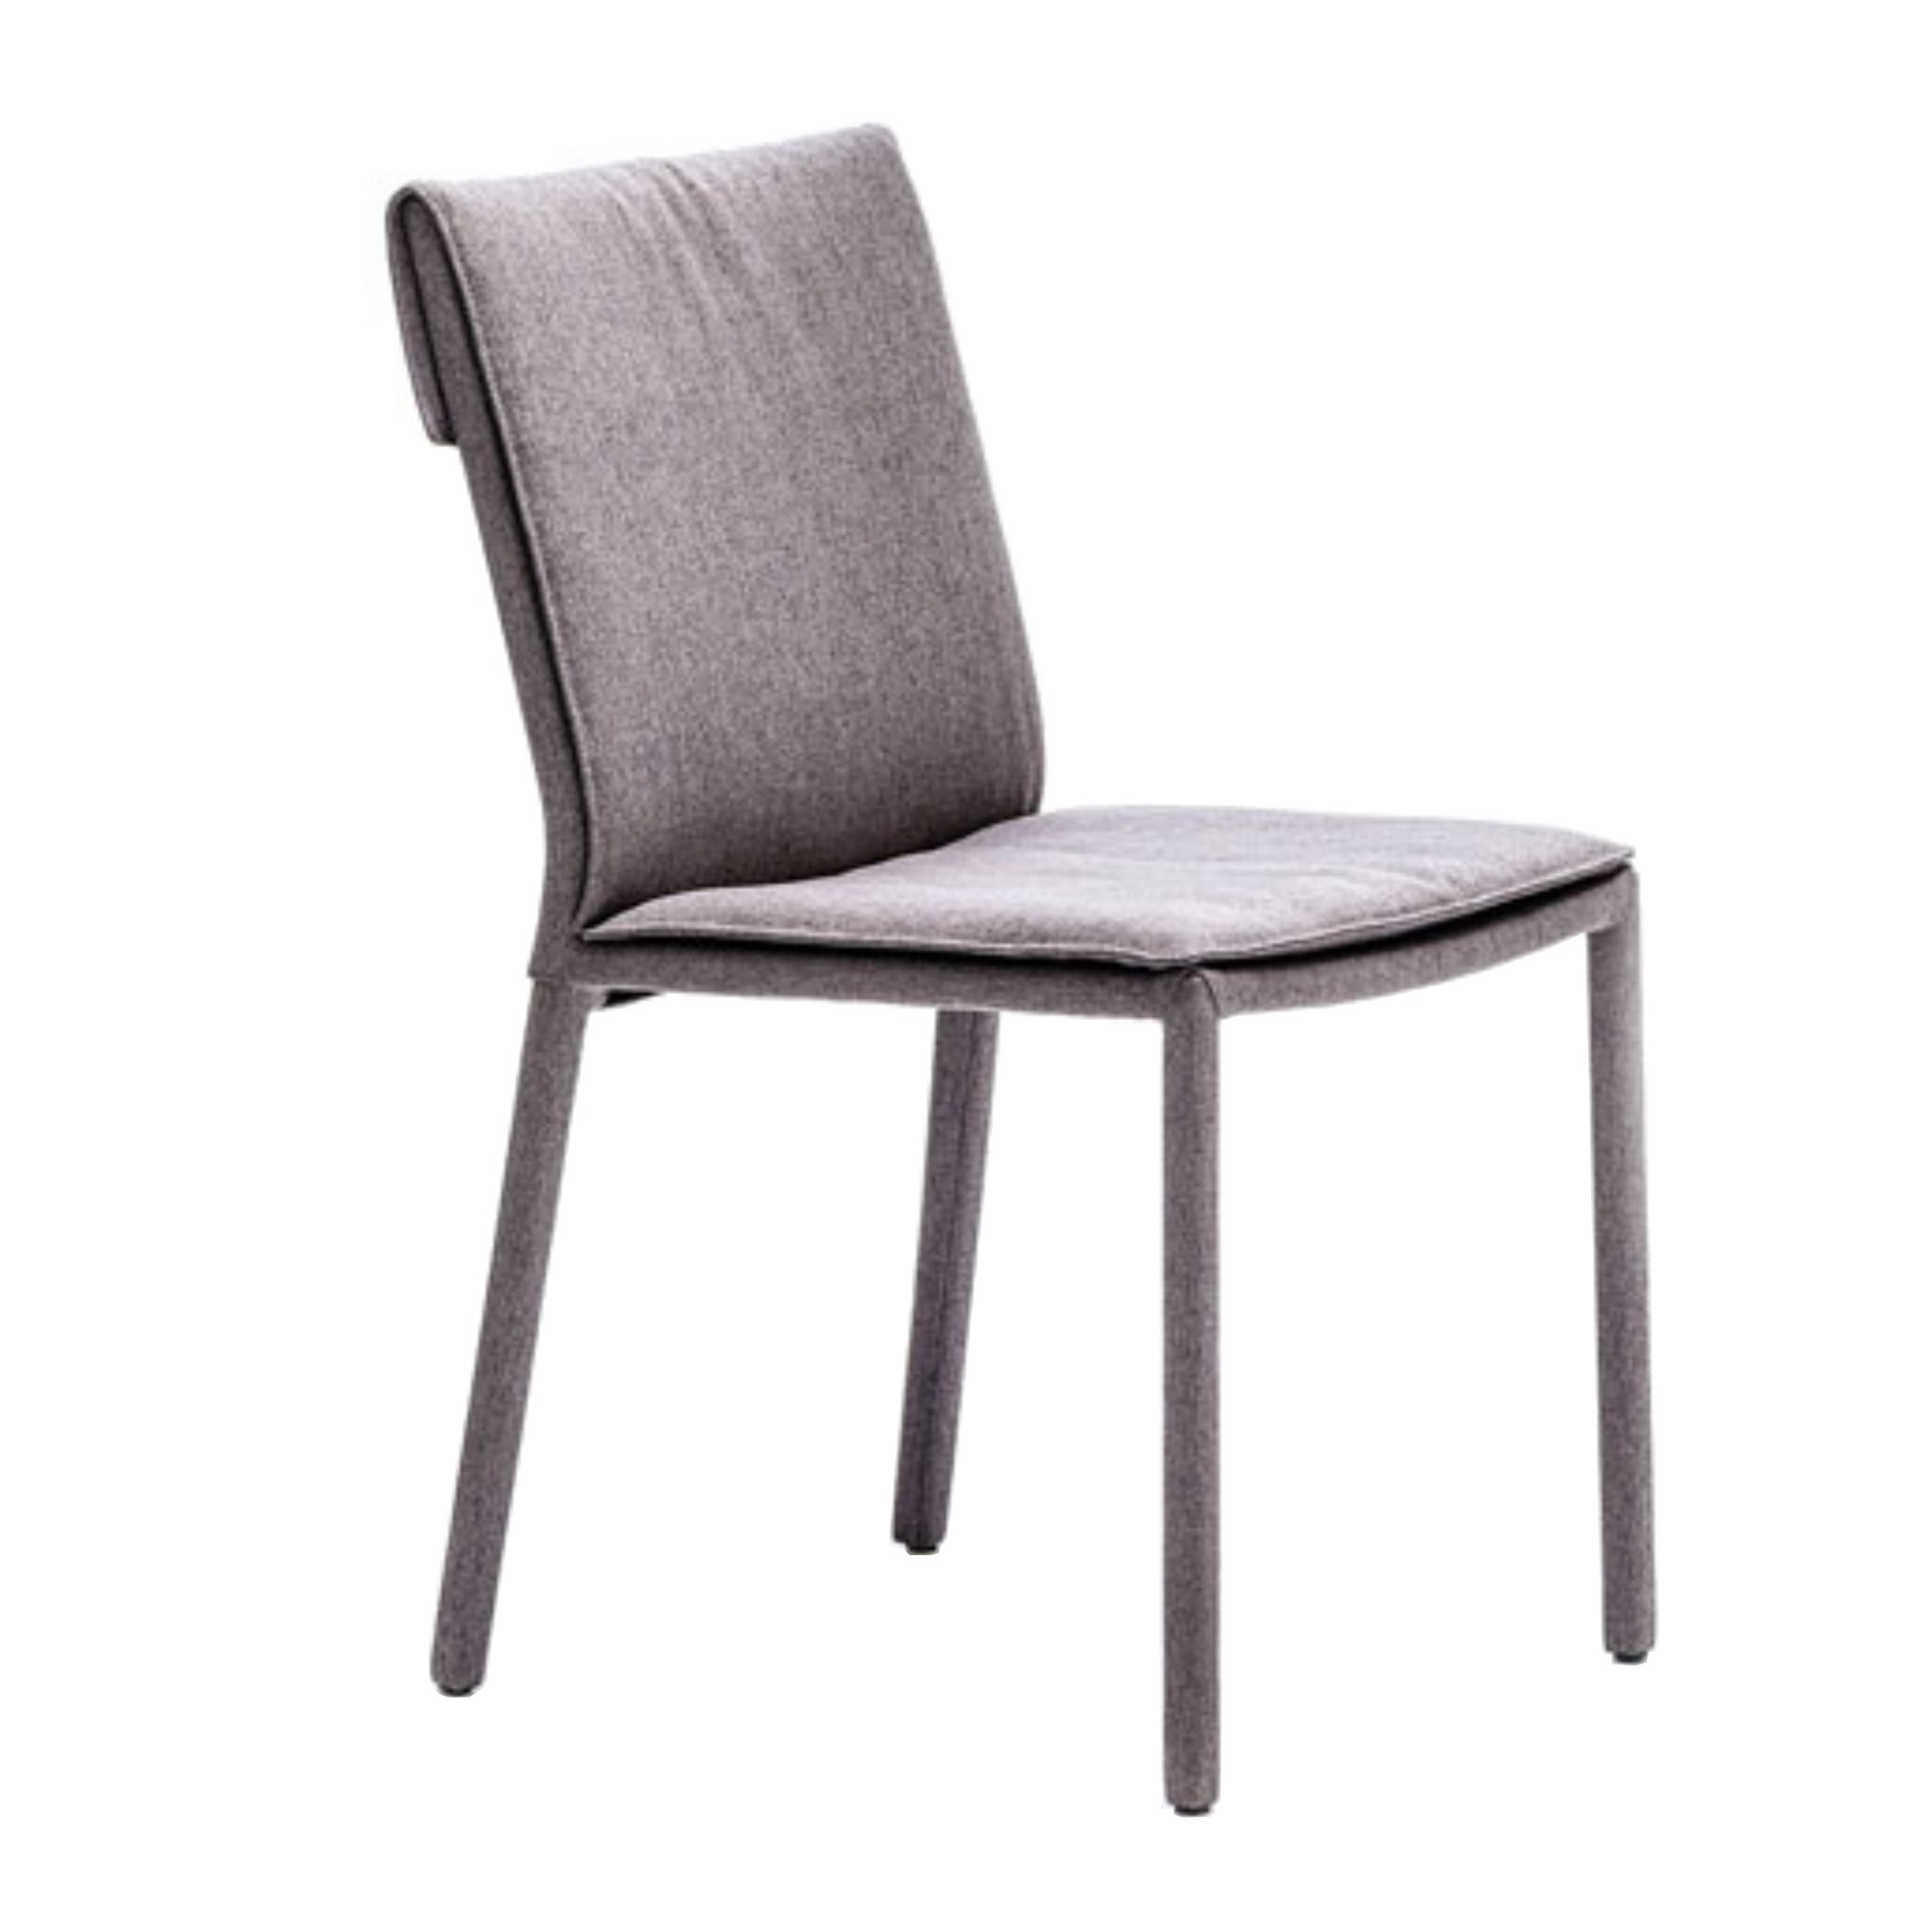 ISABEL CHAIR, by CATTELAN ITALIA